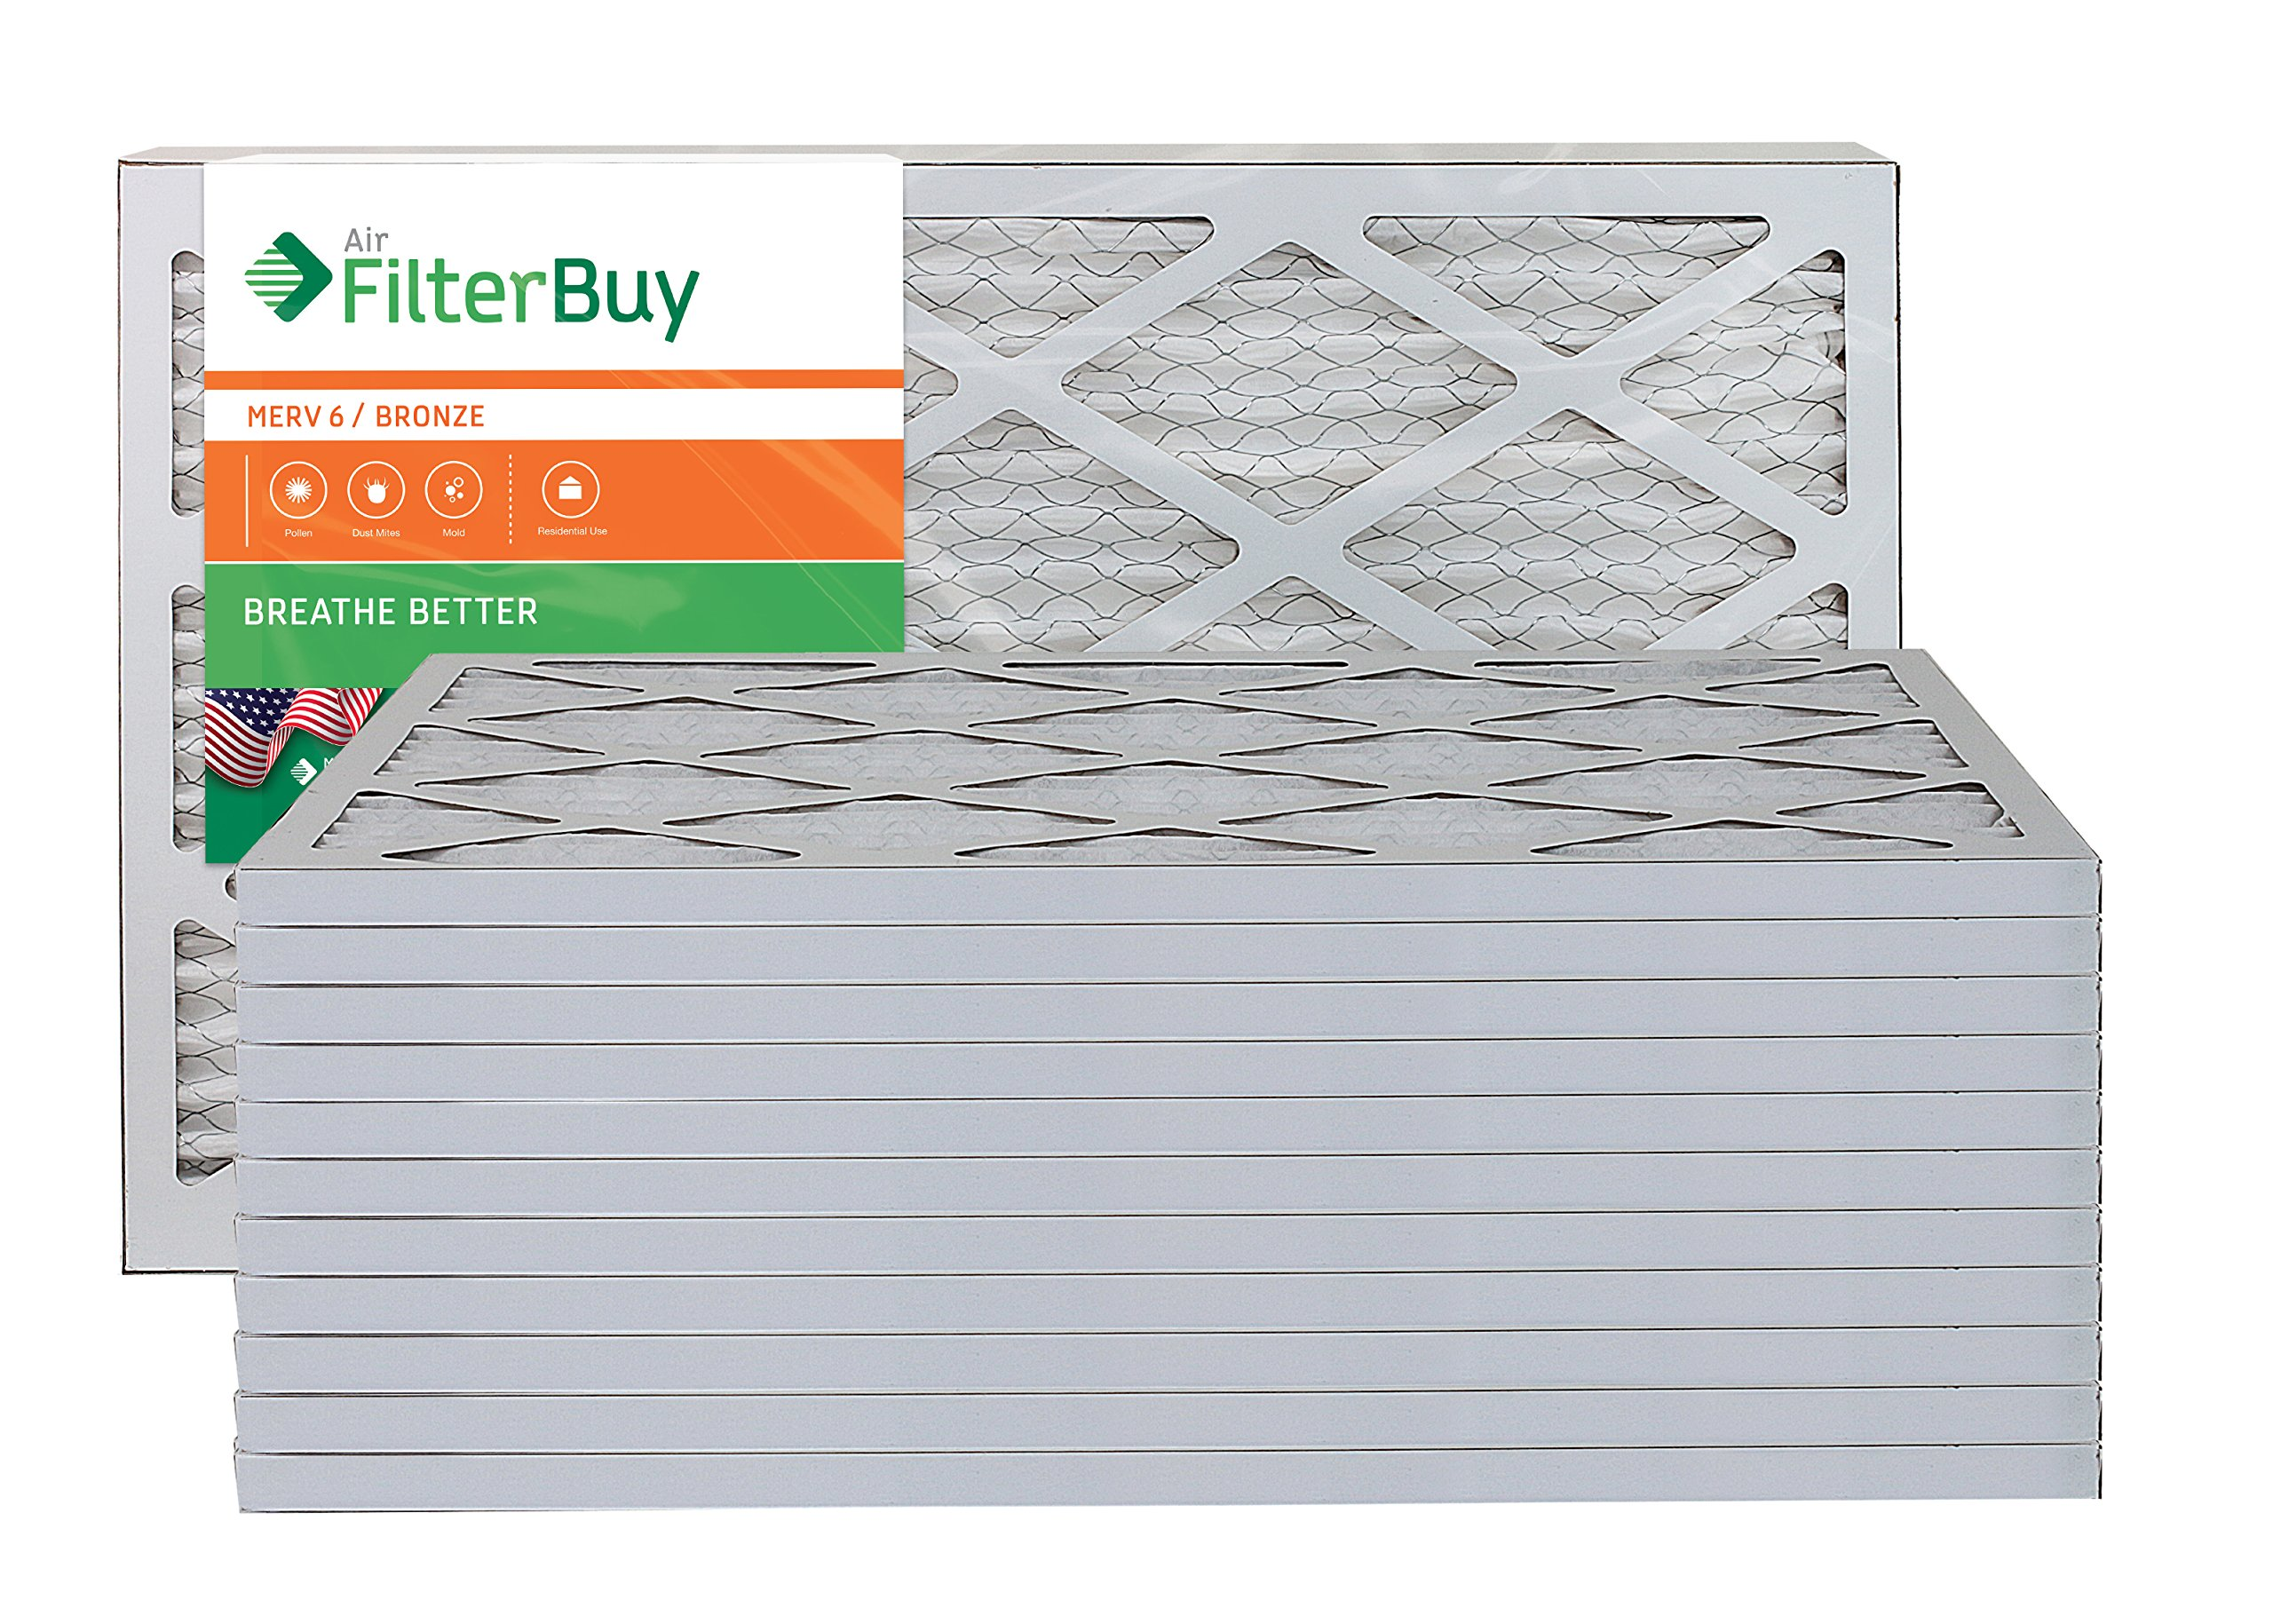 AFB Bronze MERV 6 15x20x1 Pleated AC Furnace Air Filter. Pack of 12 Filters. 100% produced in the USA. by FilterBuy